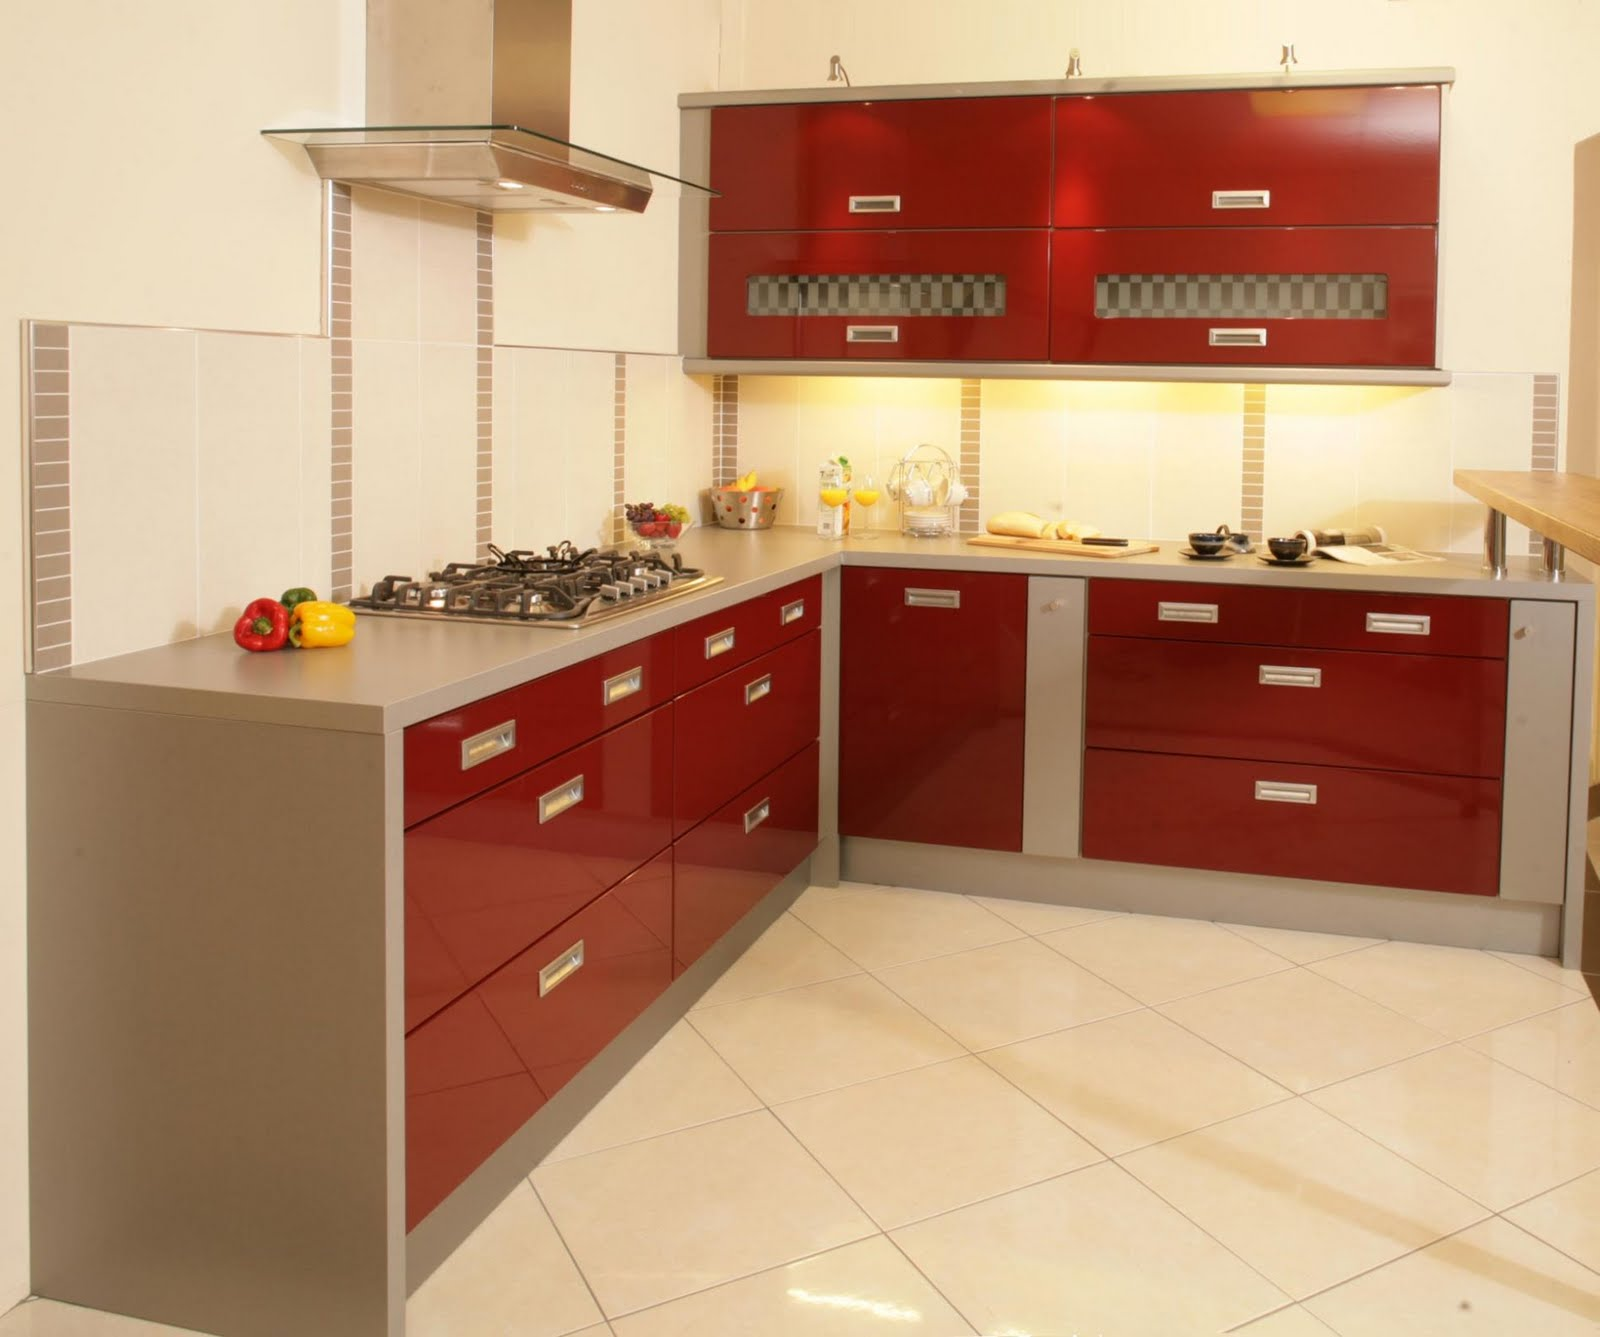 Mobile kitchen cabinets Photo - 11